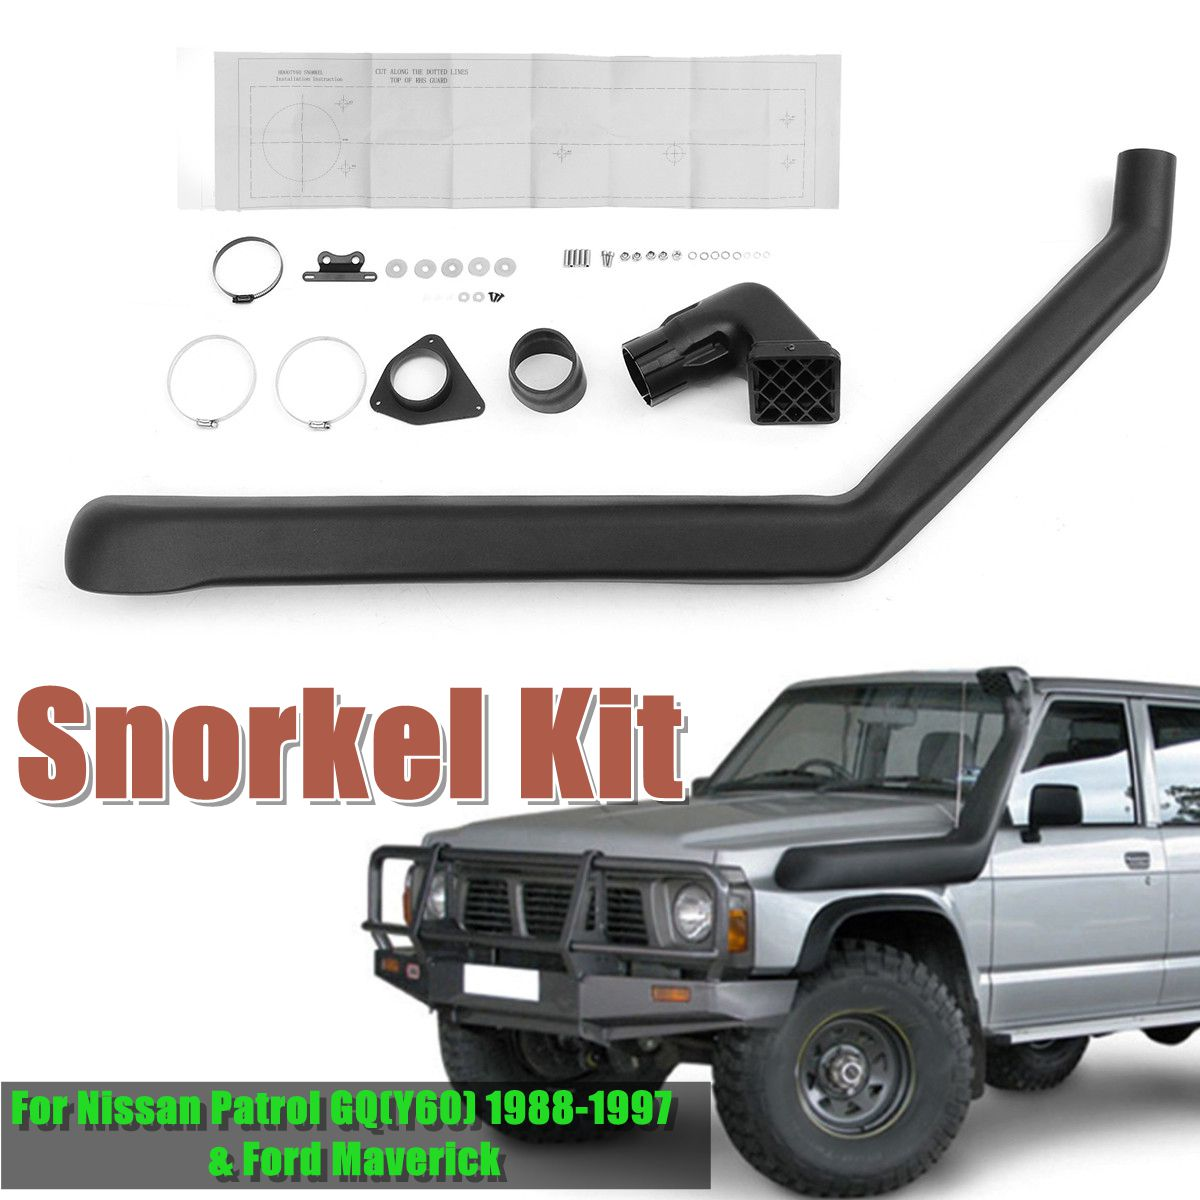 Air Intake System Intake Snorkel Kit For Nissan Patrol Gq 1988-1997 For Ford Maverick y60